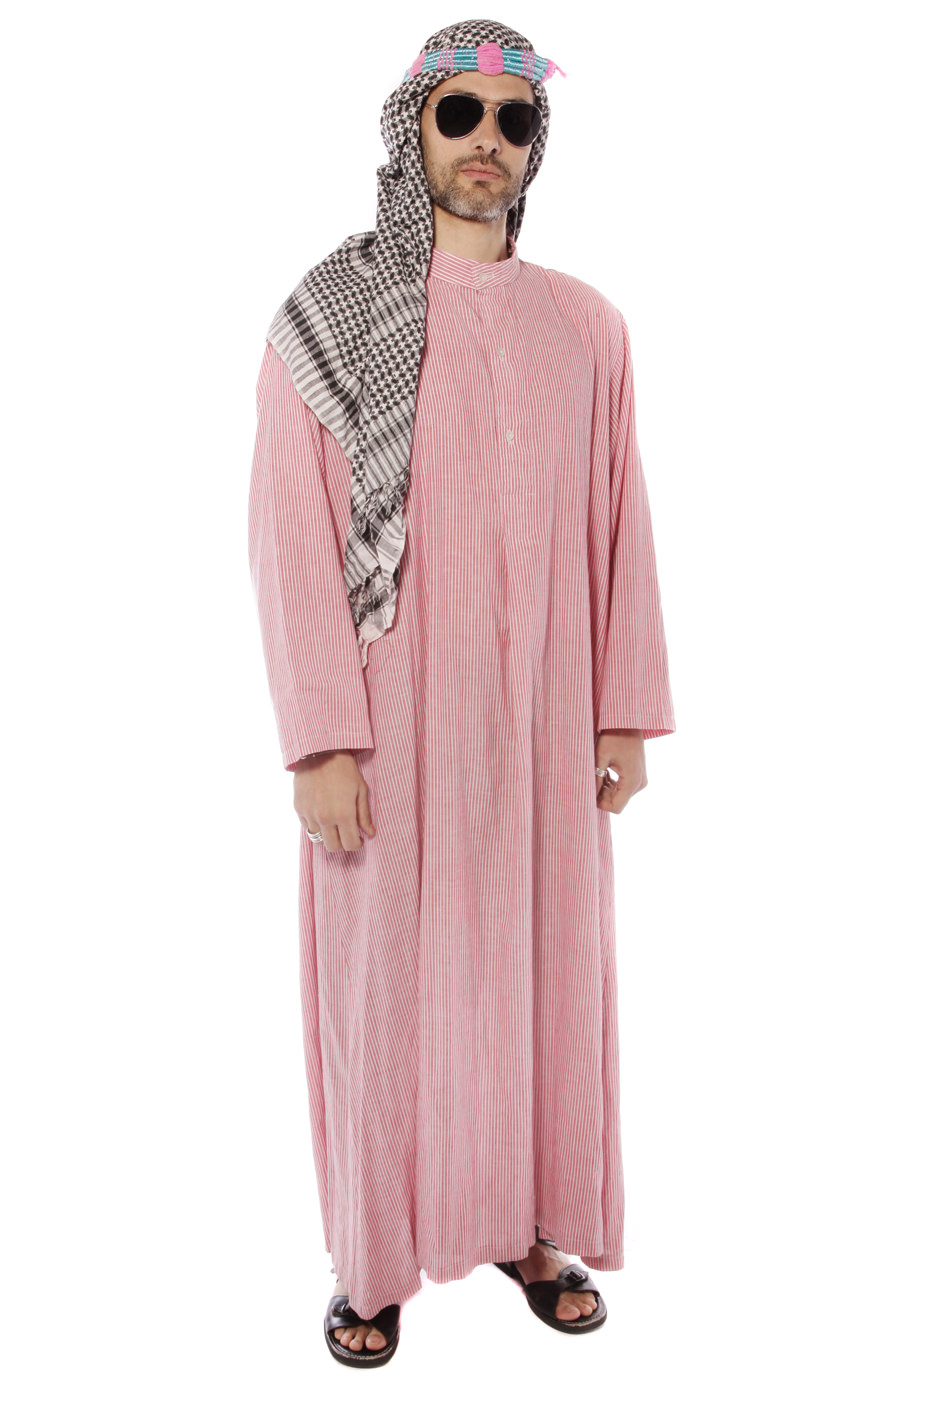 ARABIC SHEIK PINK STRIPES COSTUME WITH HEADDRESs